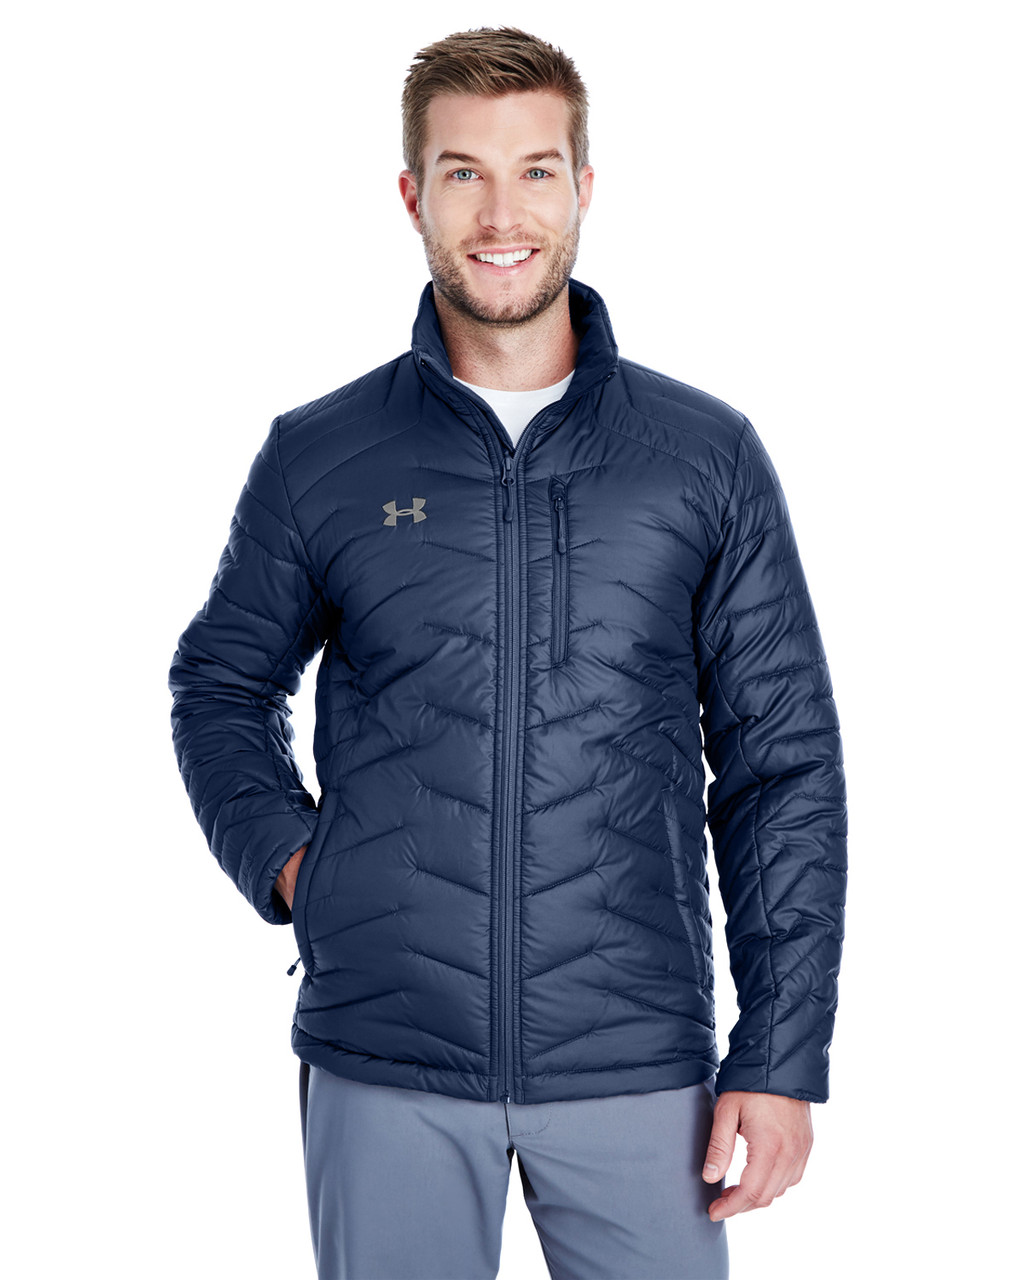 Midnight Navy/ Steel - 1317223 Under Armour SuperSale Men's Corporate Reactor Jacket | BlankClothing.ca